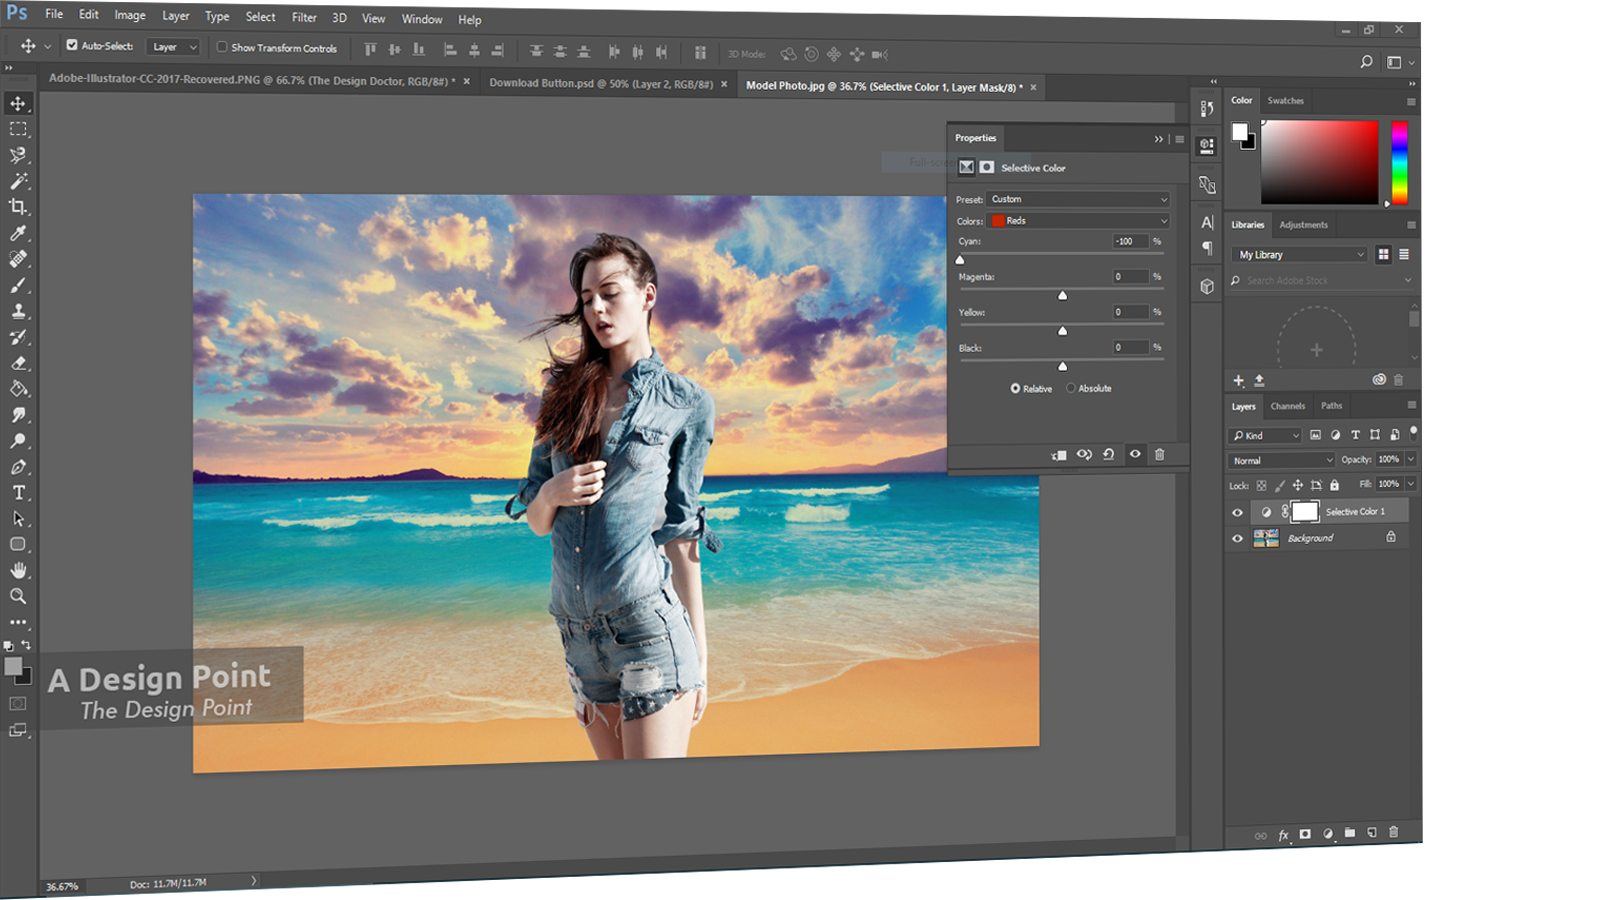 Adobe Photoshop Cc 2017 Full Version Free Download With Crack Exxpose Your Creative Thing